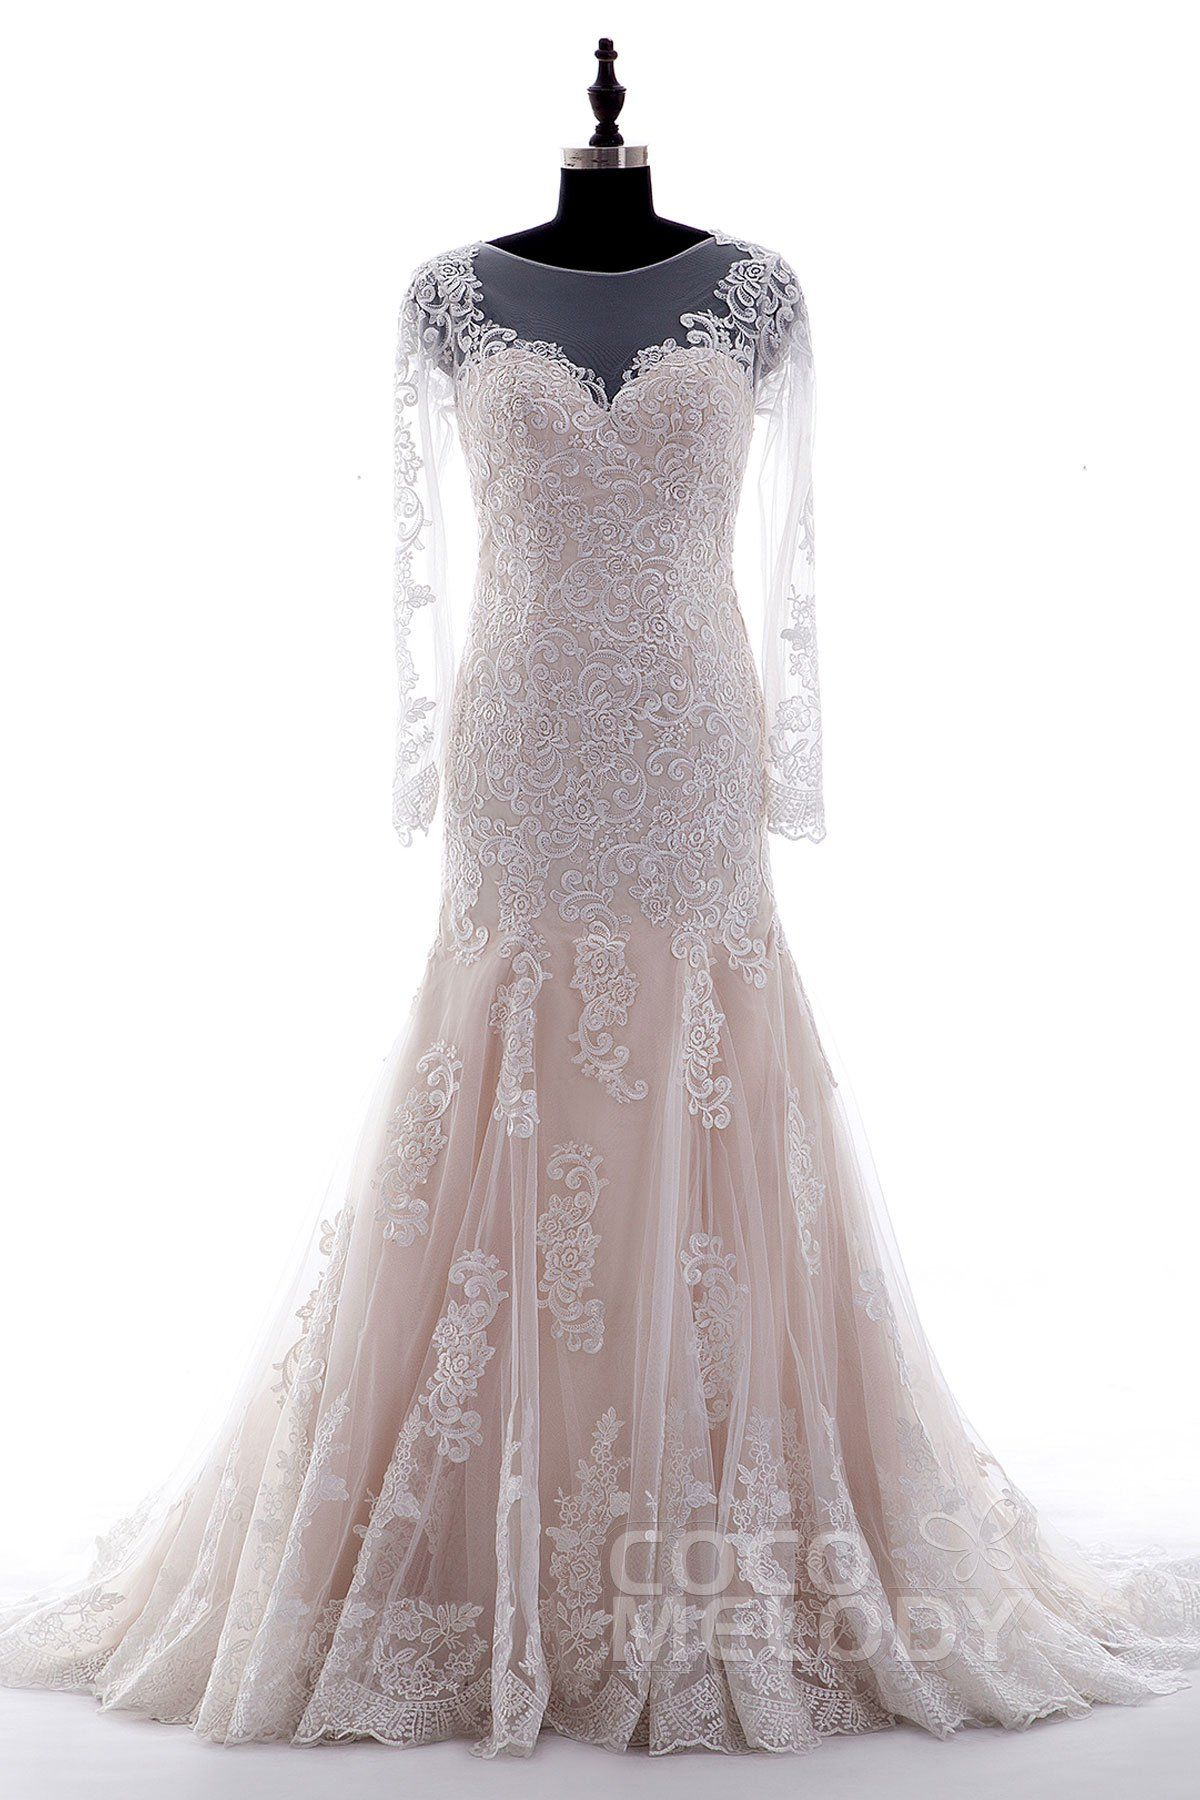 Queenly trumpetmermaid illusion natural court train tulle and lace